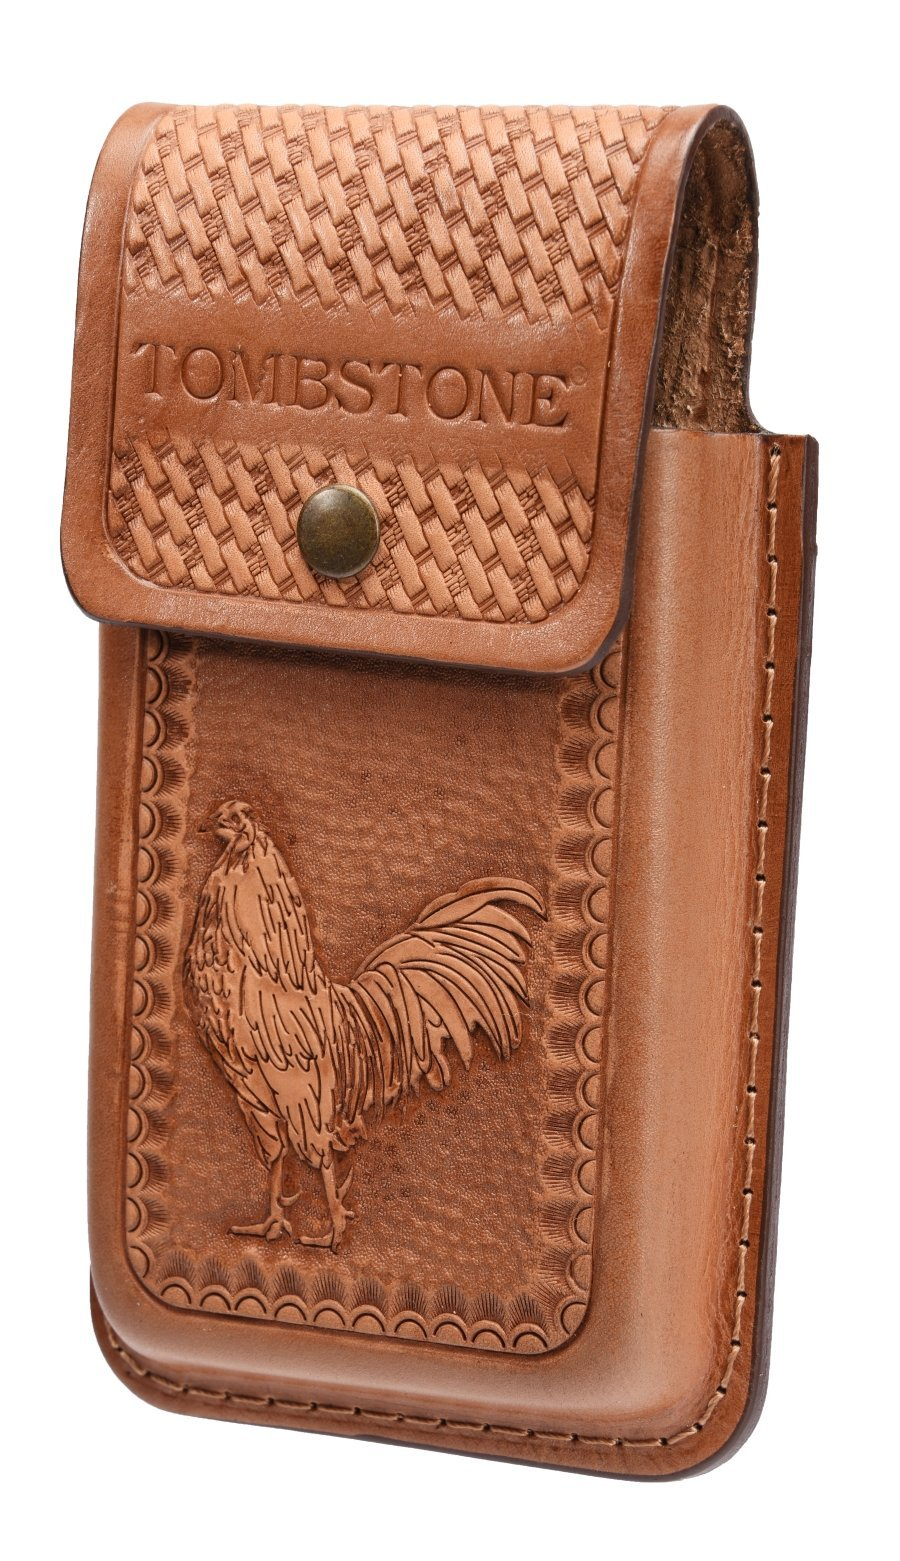 Tombstone Cellphone Case #4303